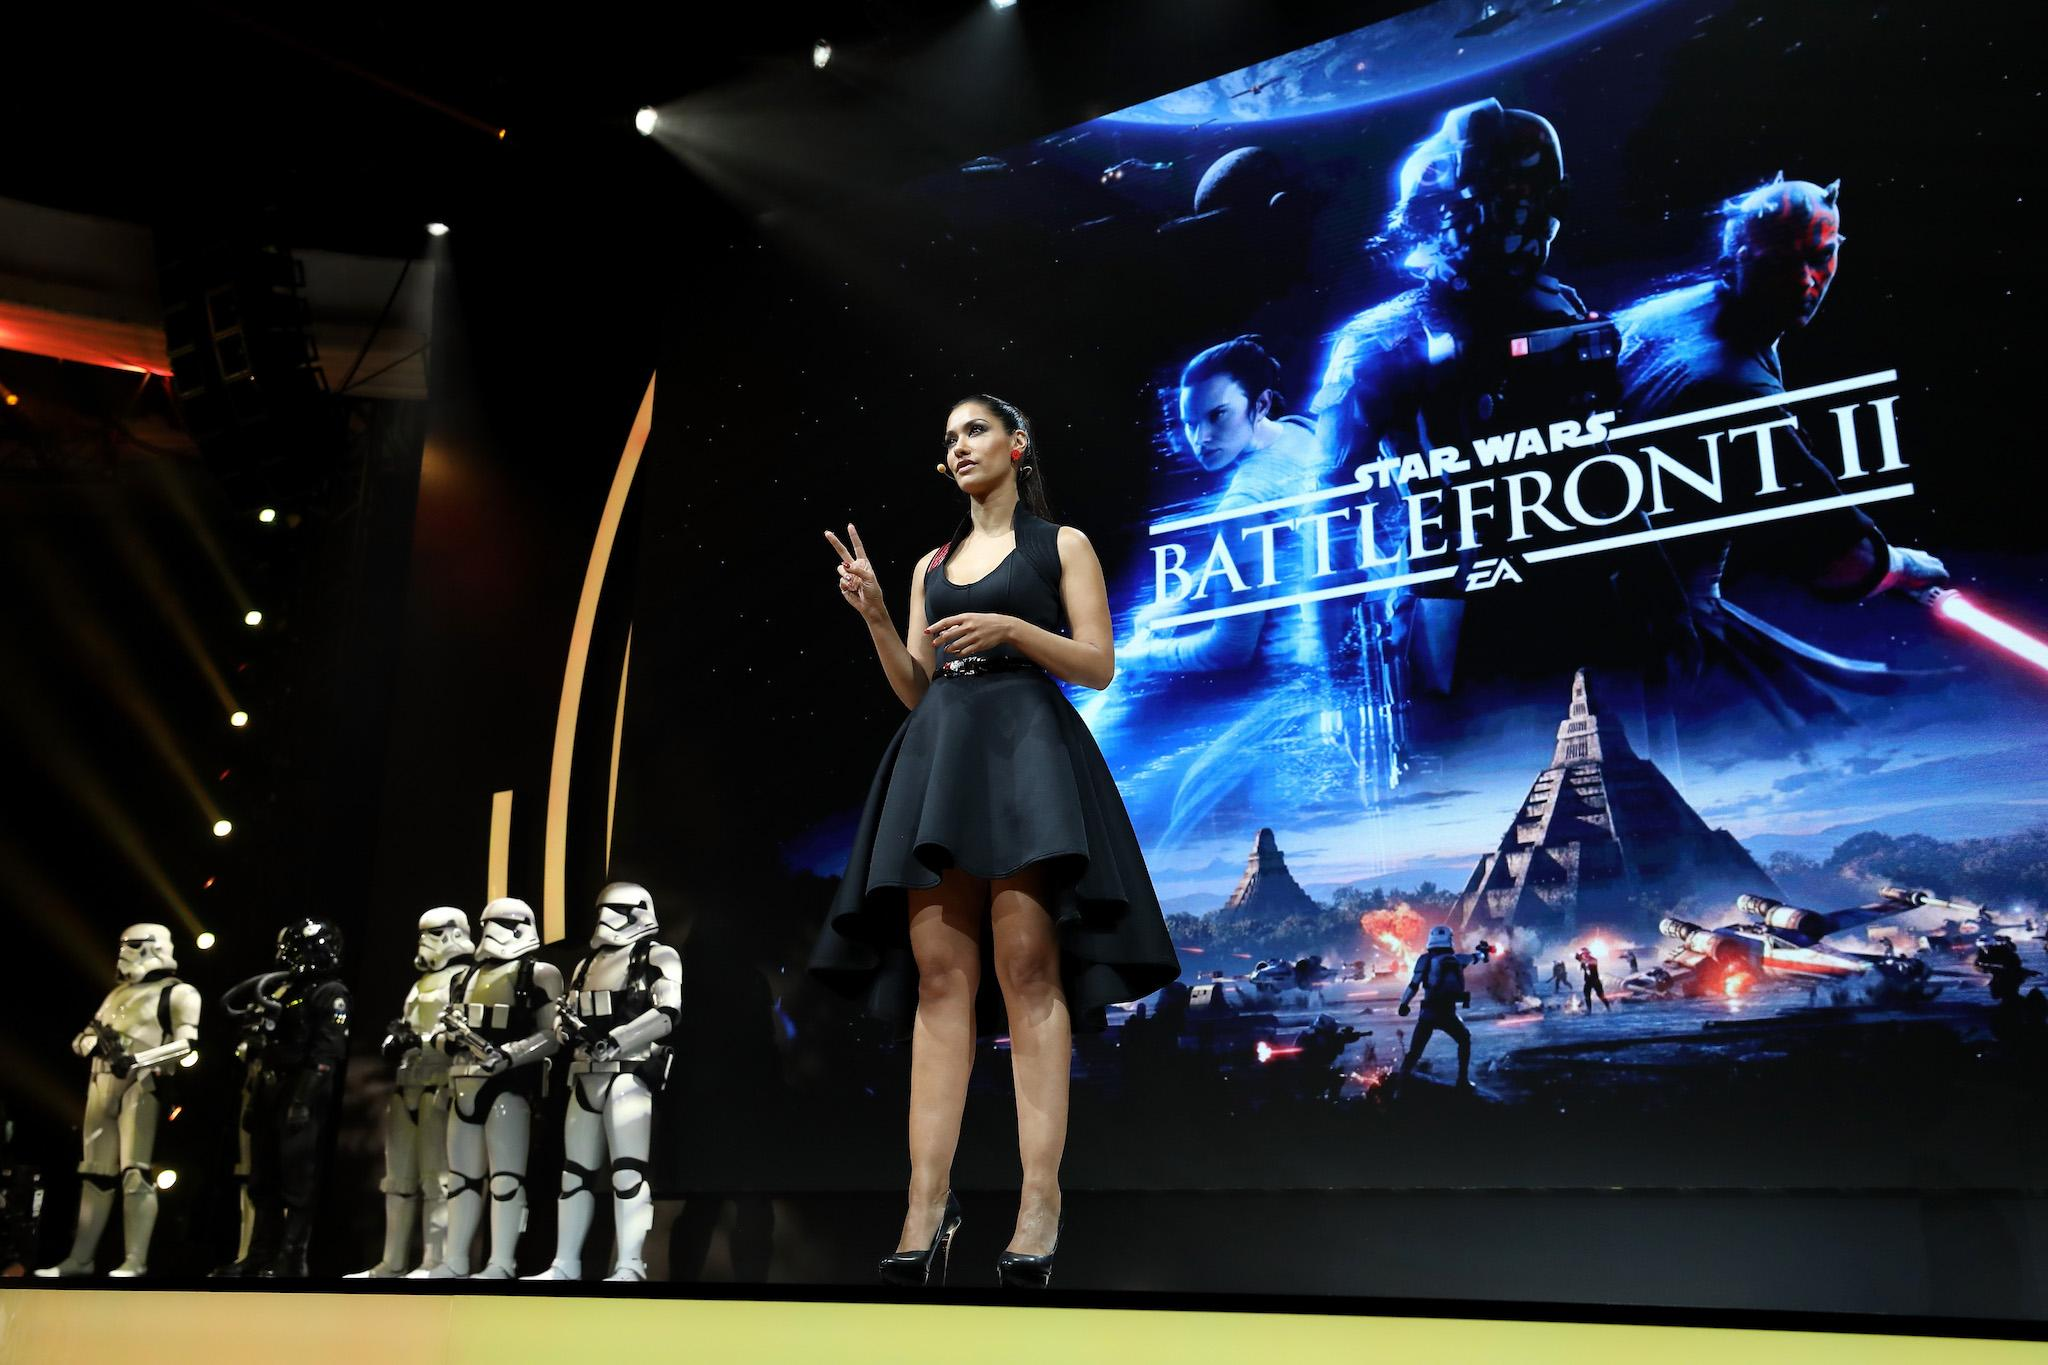 Star Wars Battlefront 2 forced to fundamentally change how game works just hours before launch date